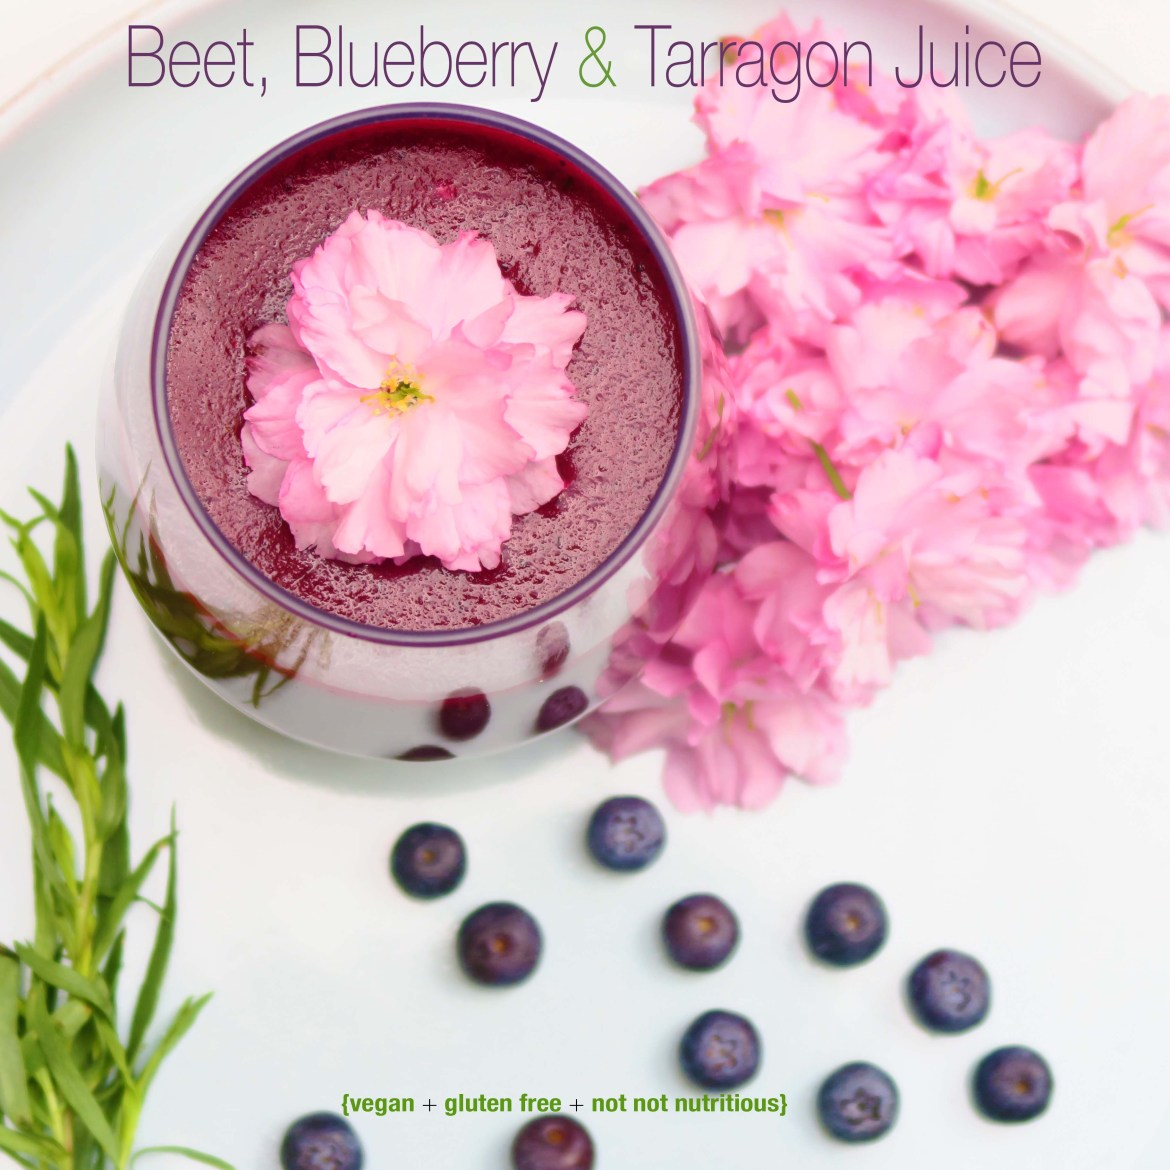 beet_blueberry_tarragon_juice_IMG_1310